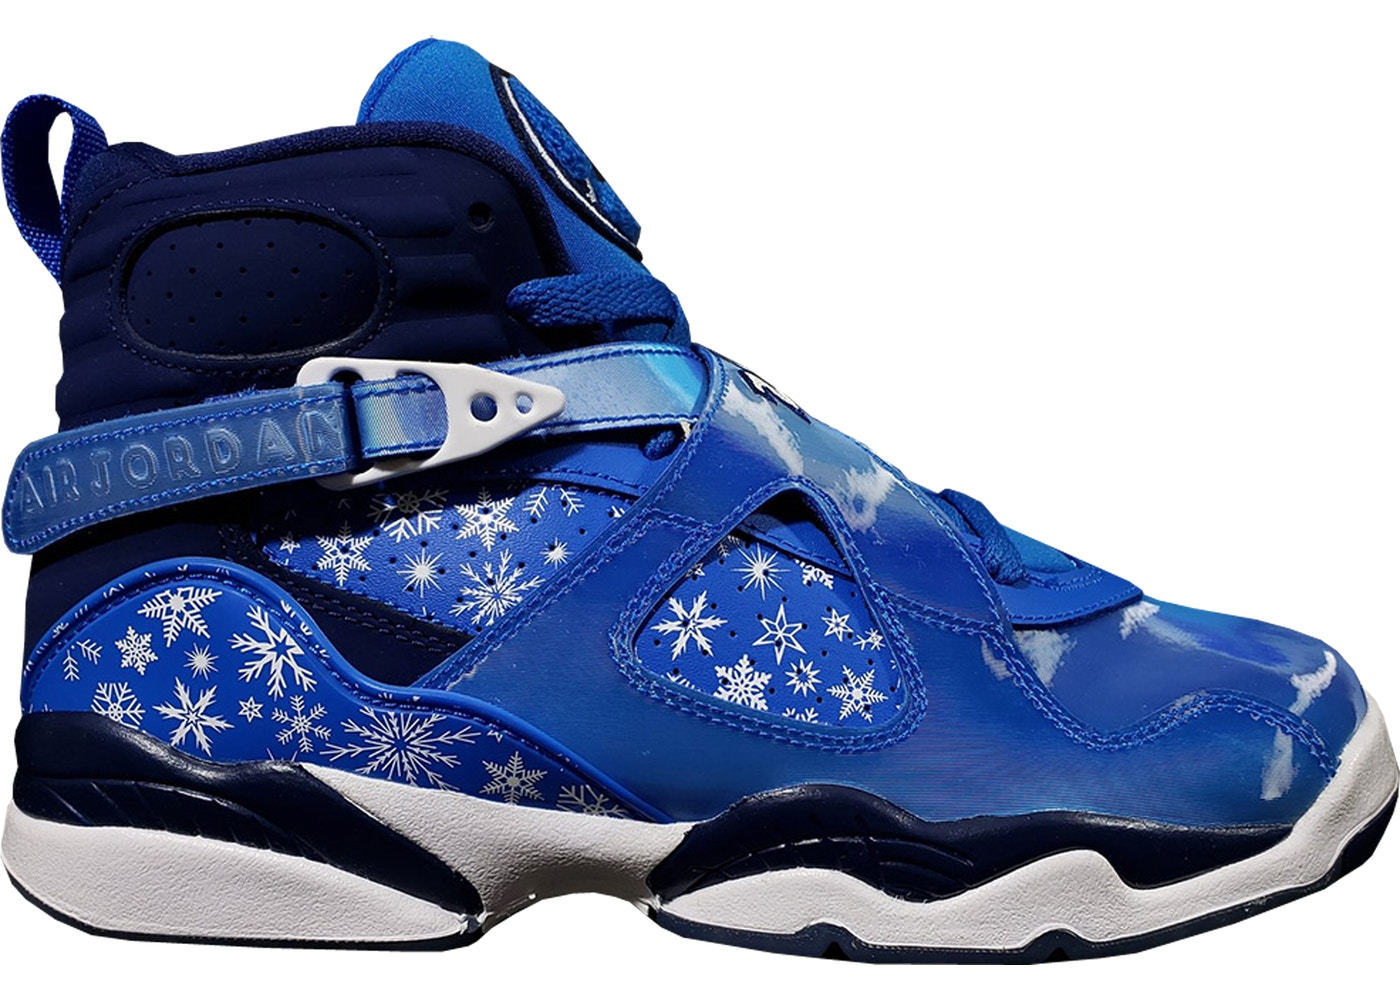 new product 34f29 48745 Jordan 8 Retro Snow Blizzard (GS) - 305368-400